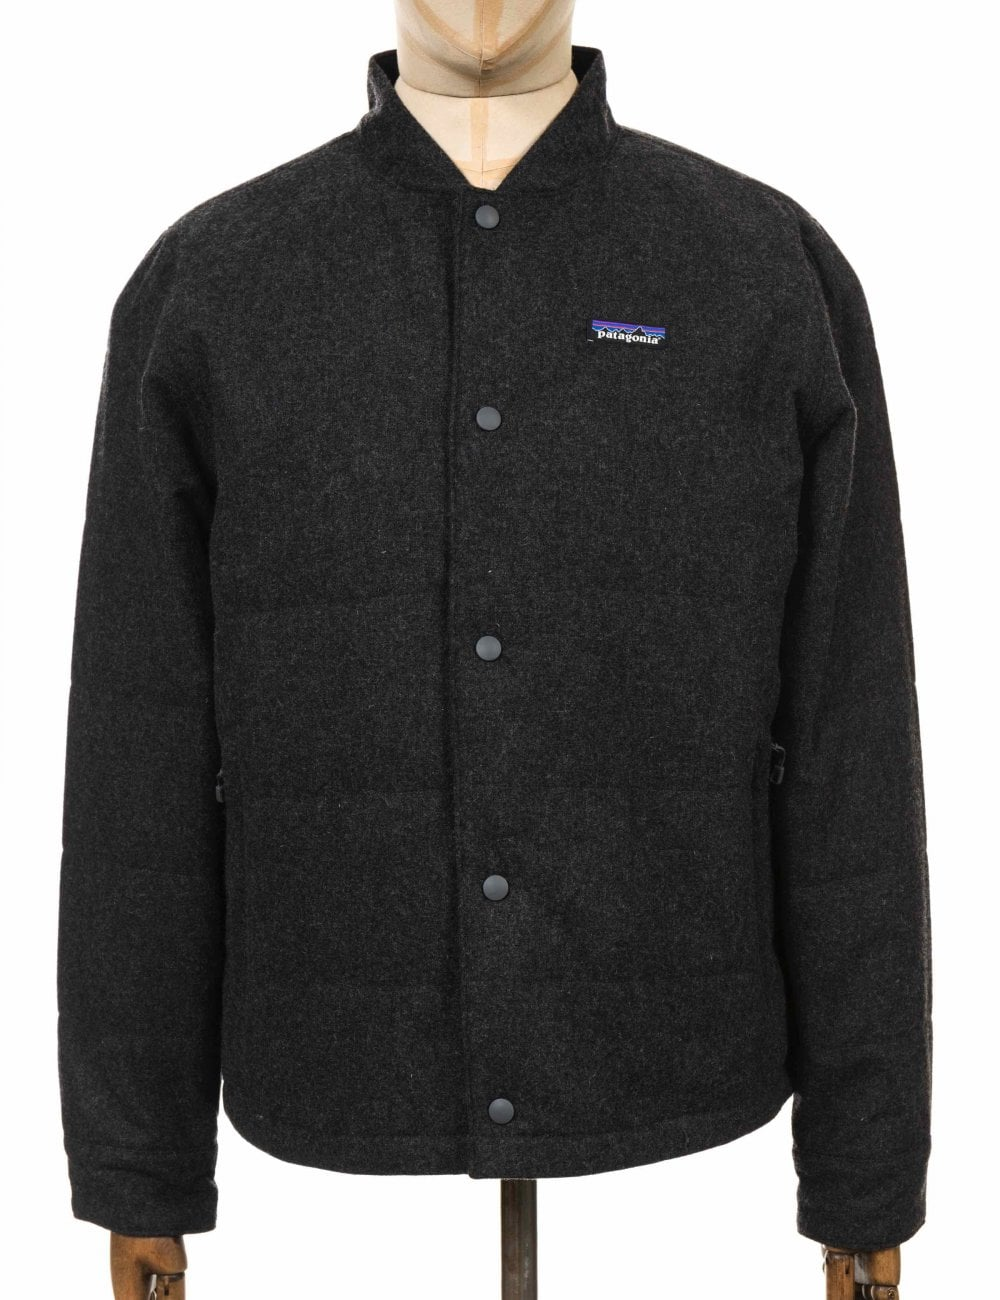 3451fab8706 Patagonia Recycled Wool Bomber Jacket - Forge Grey - Clothing from Fat  Buddha Store UK